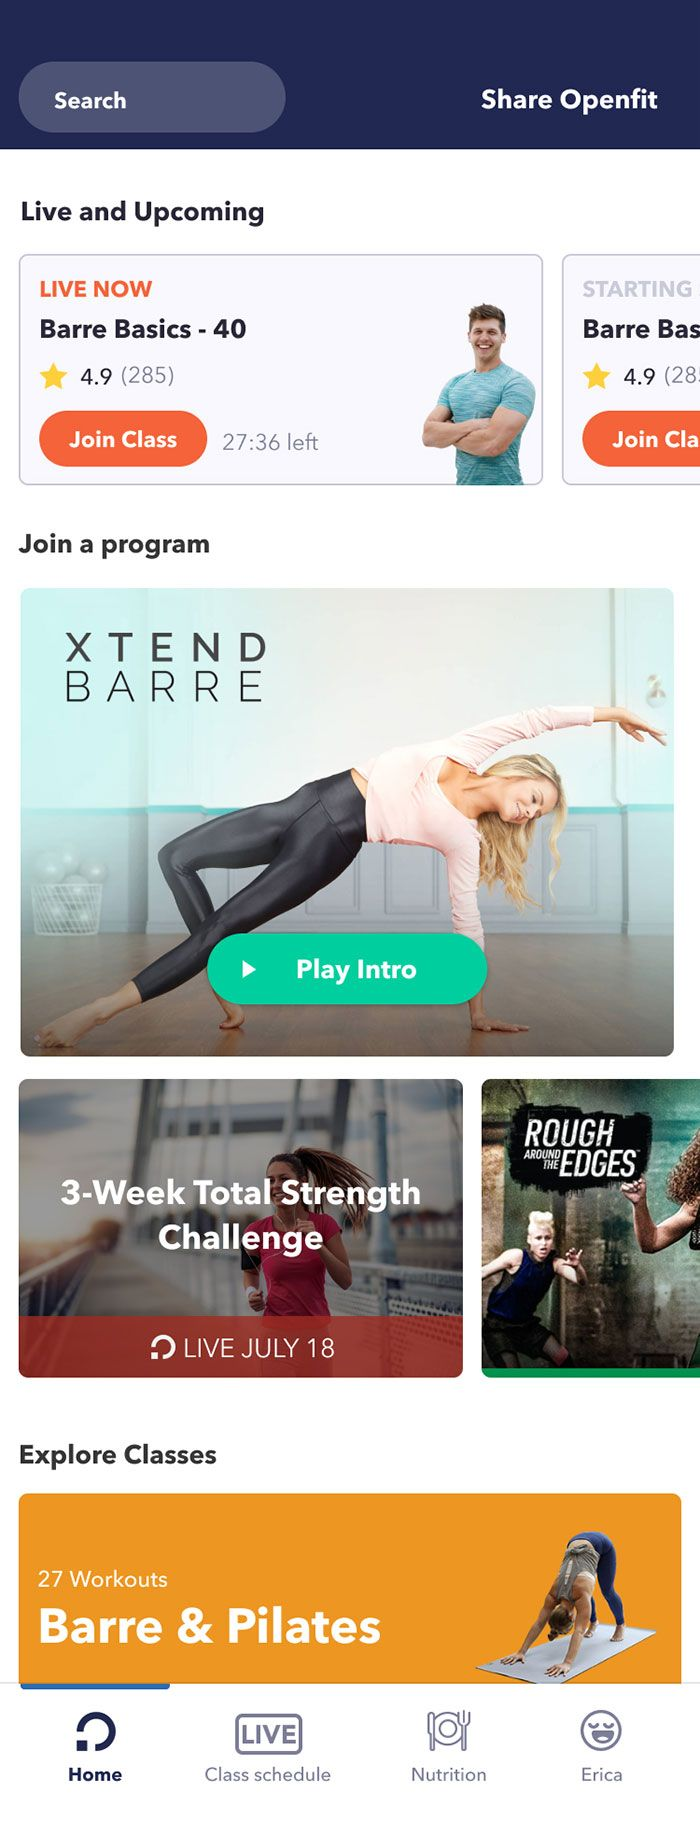 With Openfit Live, you can choose a workout from one of the 350+ weekly group fitness classes and en...